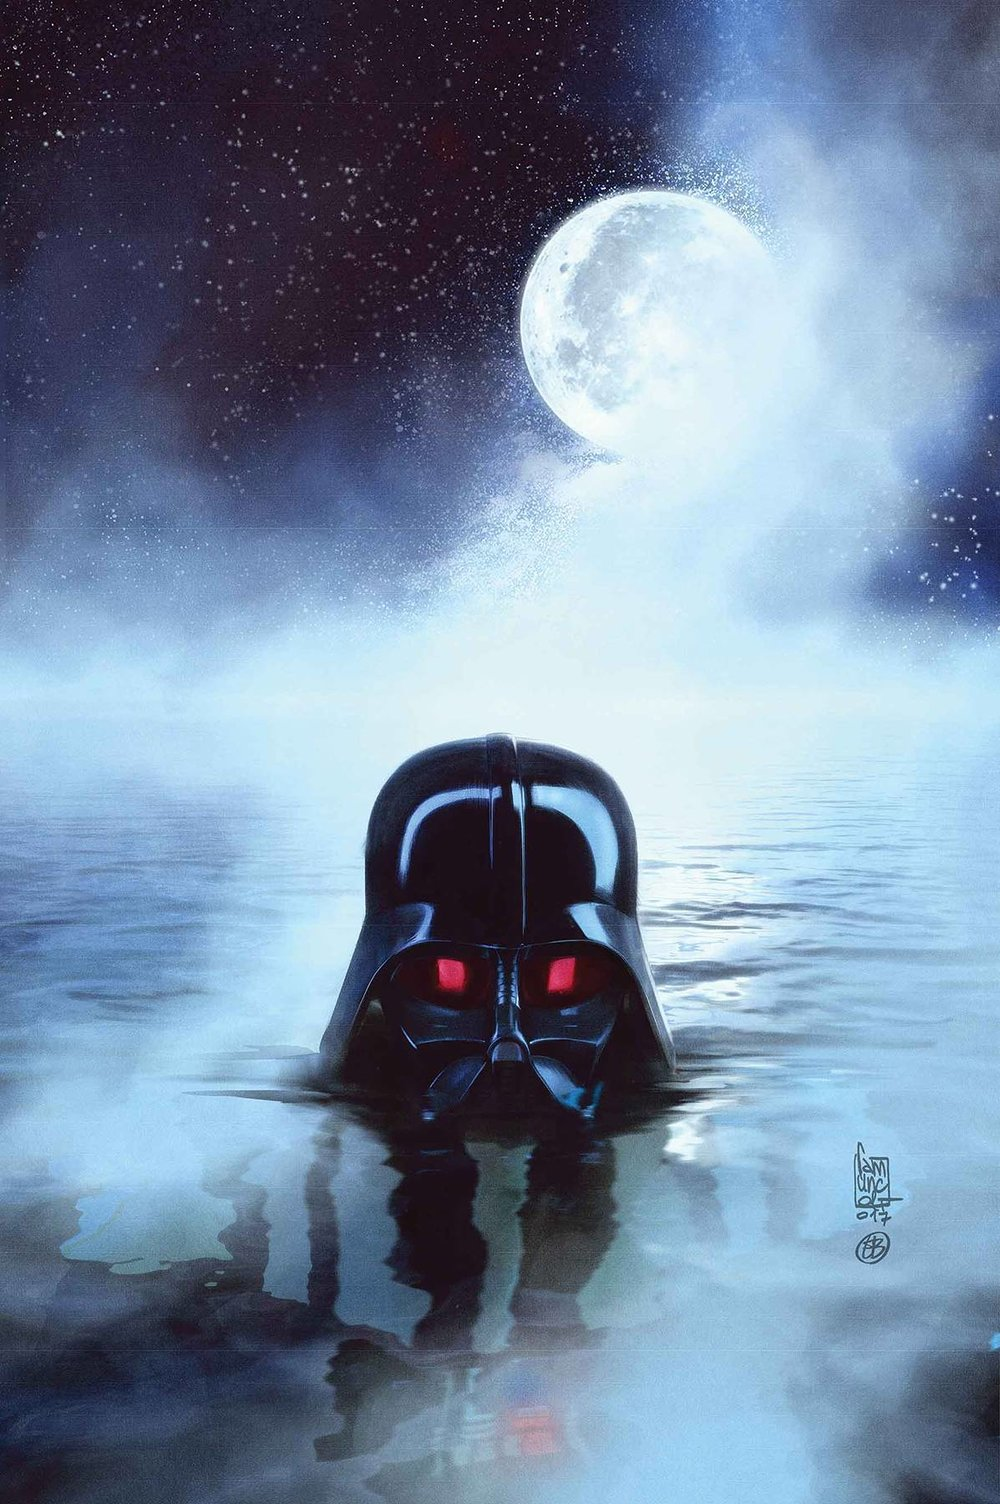 STAR WARS DARTH VADER 14.jpg